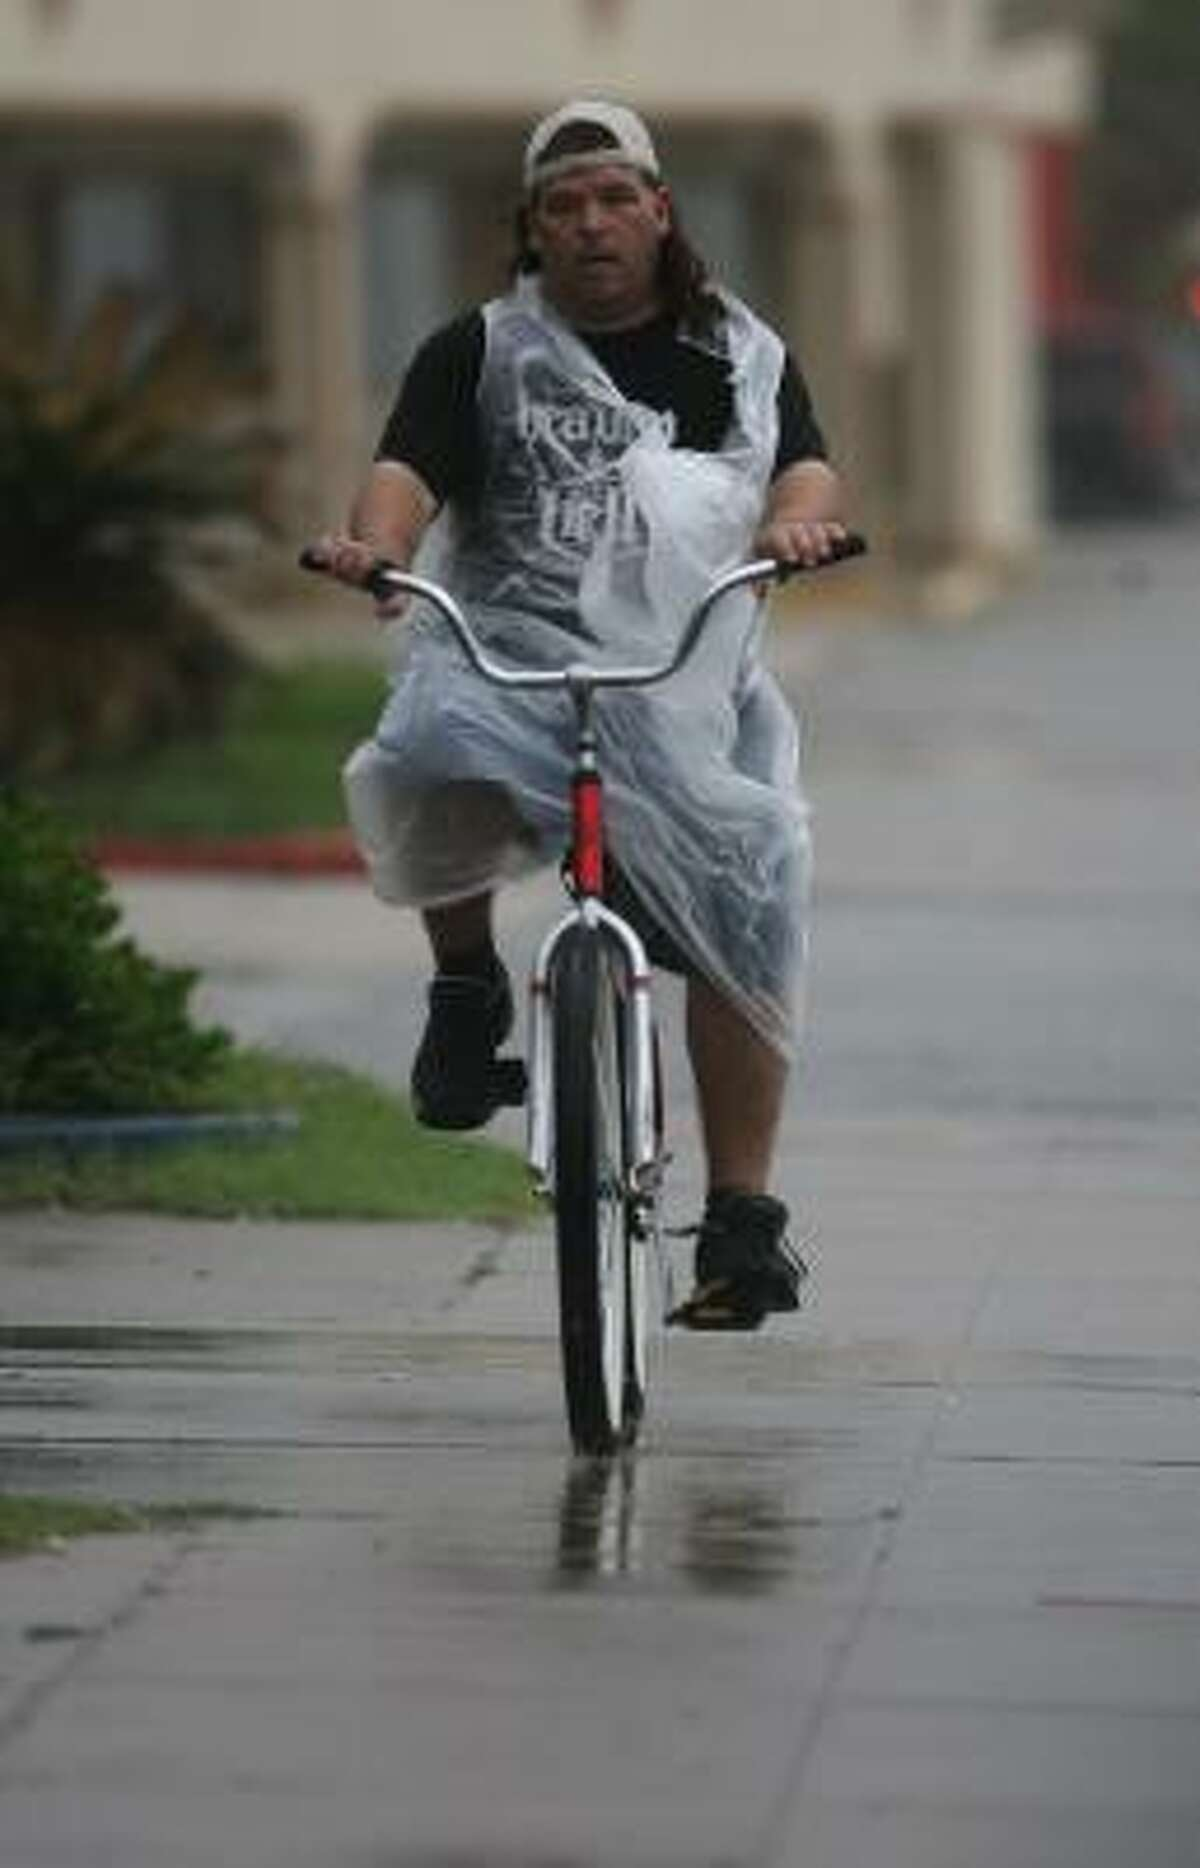 A man bikes down the street in Galveston as Tropical Storm Humberto approaches Wednesday.